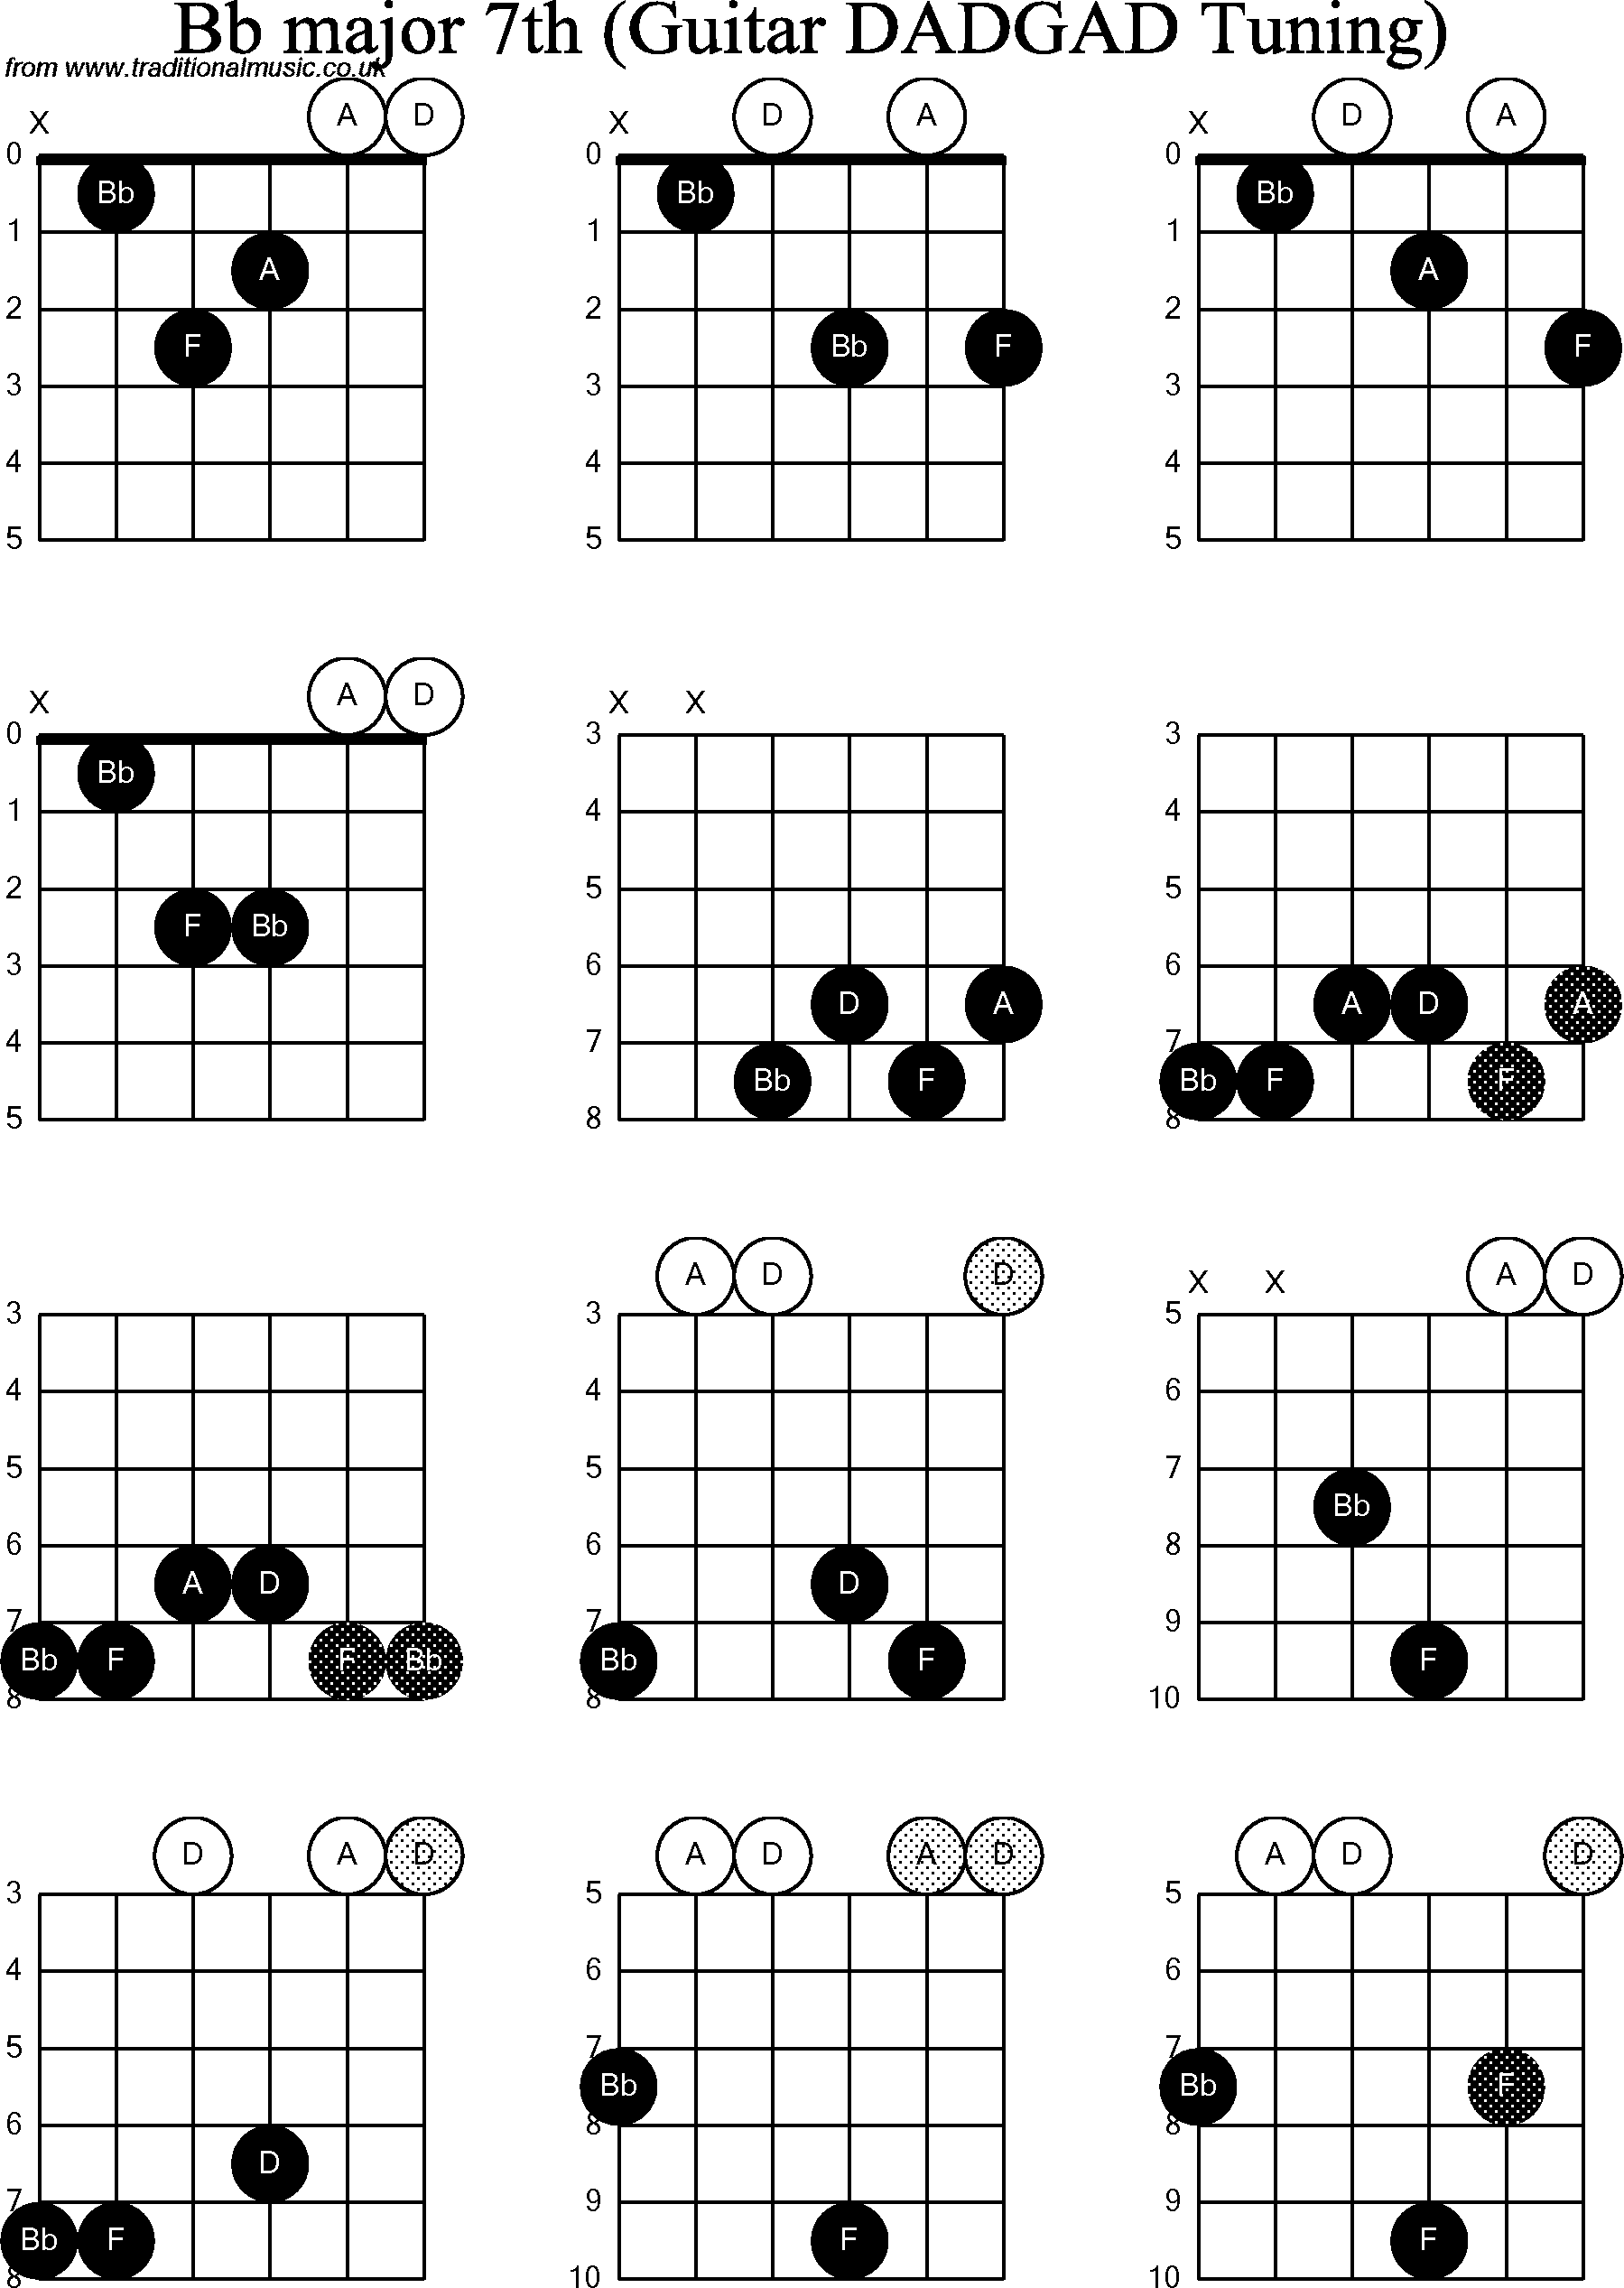 Chord diagrams d modal guitar dadgad bb major7th chord diagrams for d modal guitardadgad bb major7th hexwebz Image collections